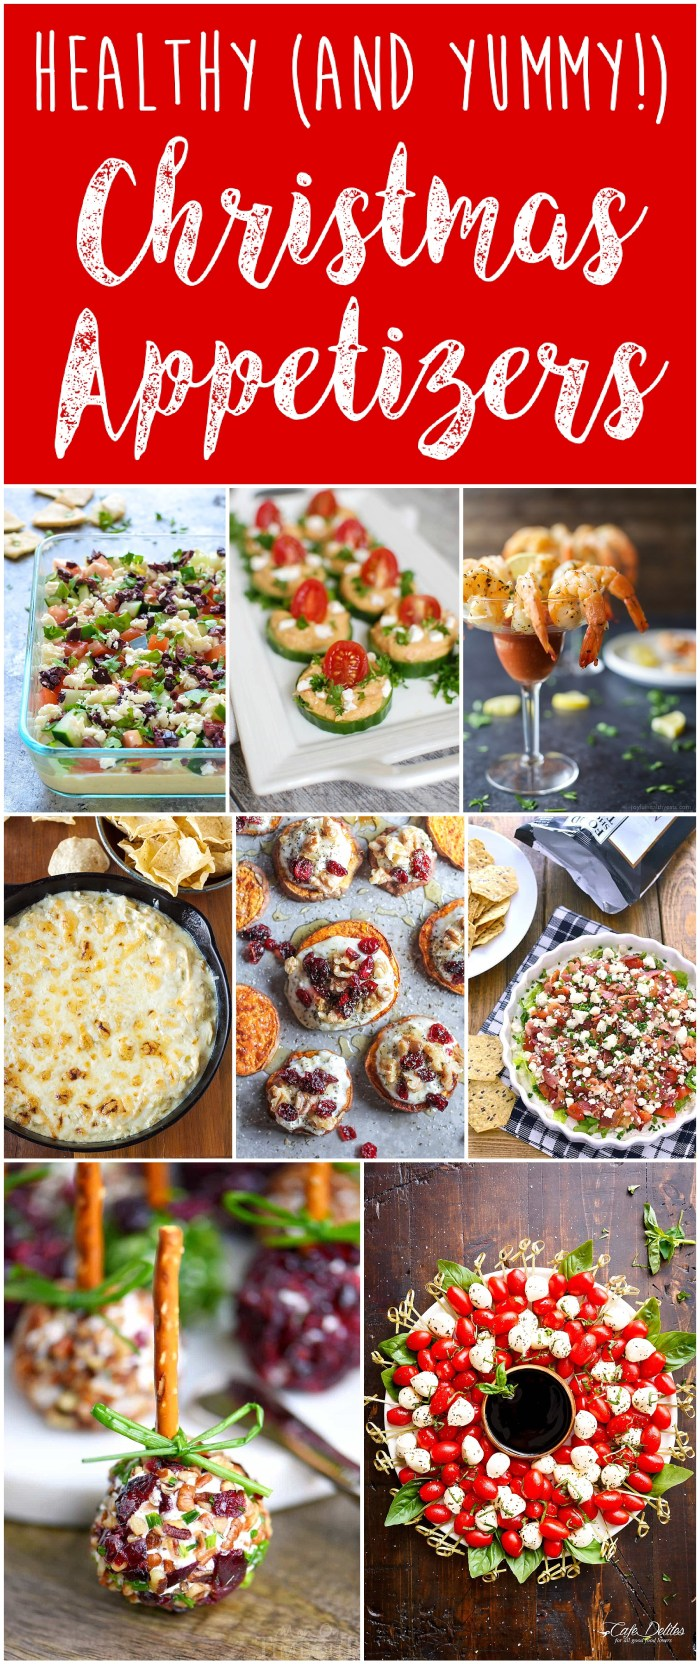 Healthy Christmas Appetizers | Healthy Holiday Food | Healthy New Years Appetizers | Healthy Holiday Appetizers | Healthy Snacks | Gluten Free | Low Carb | Keto Friendly Appetizers | Vegan Christmas | Six Clever Sisters